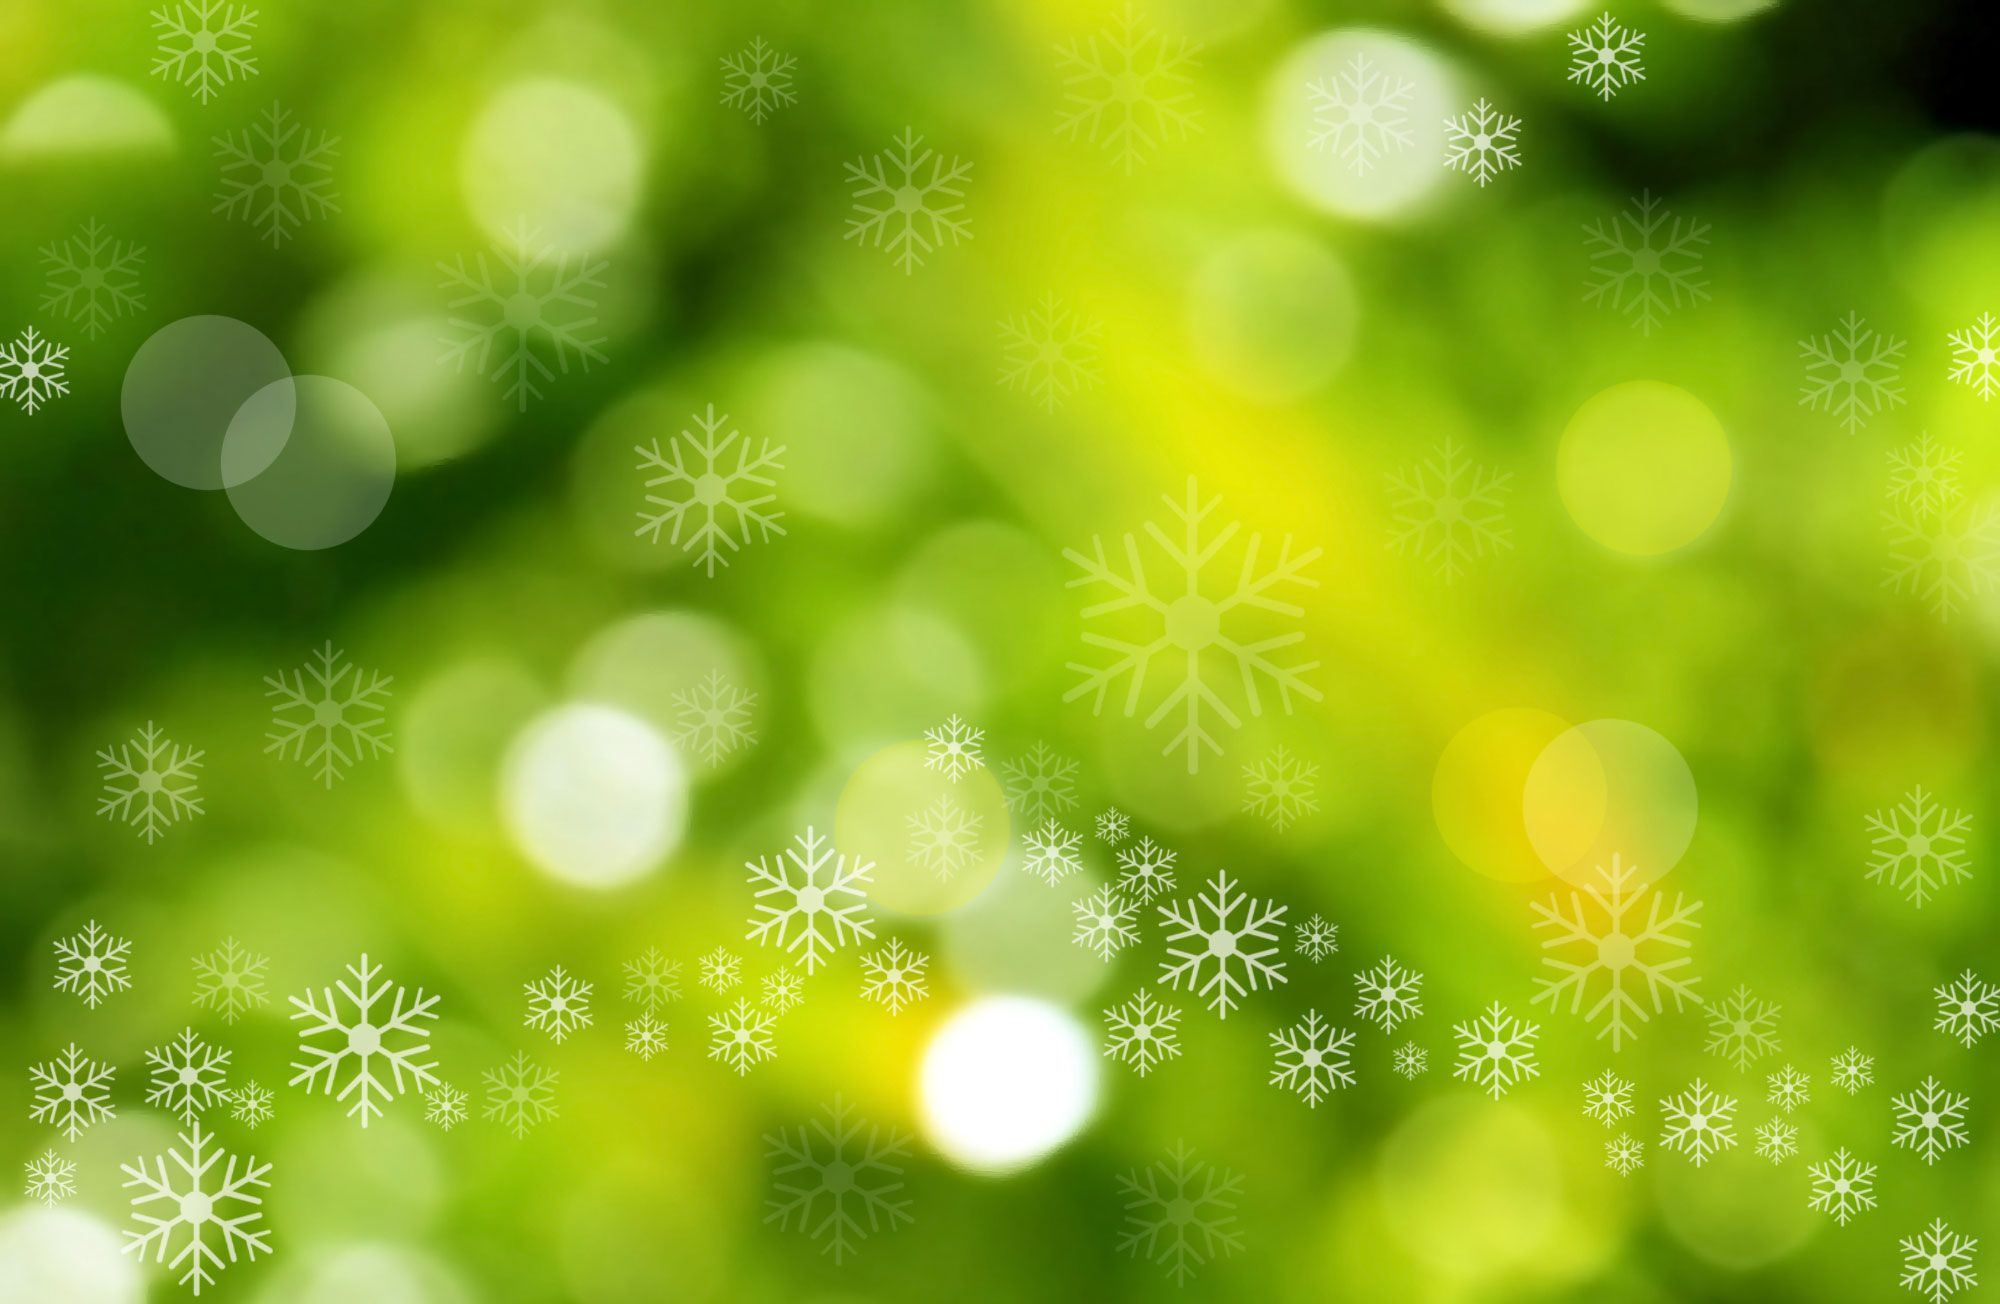 Christmas Backgrounds | Green Christmas Background with Bokeh and ...